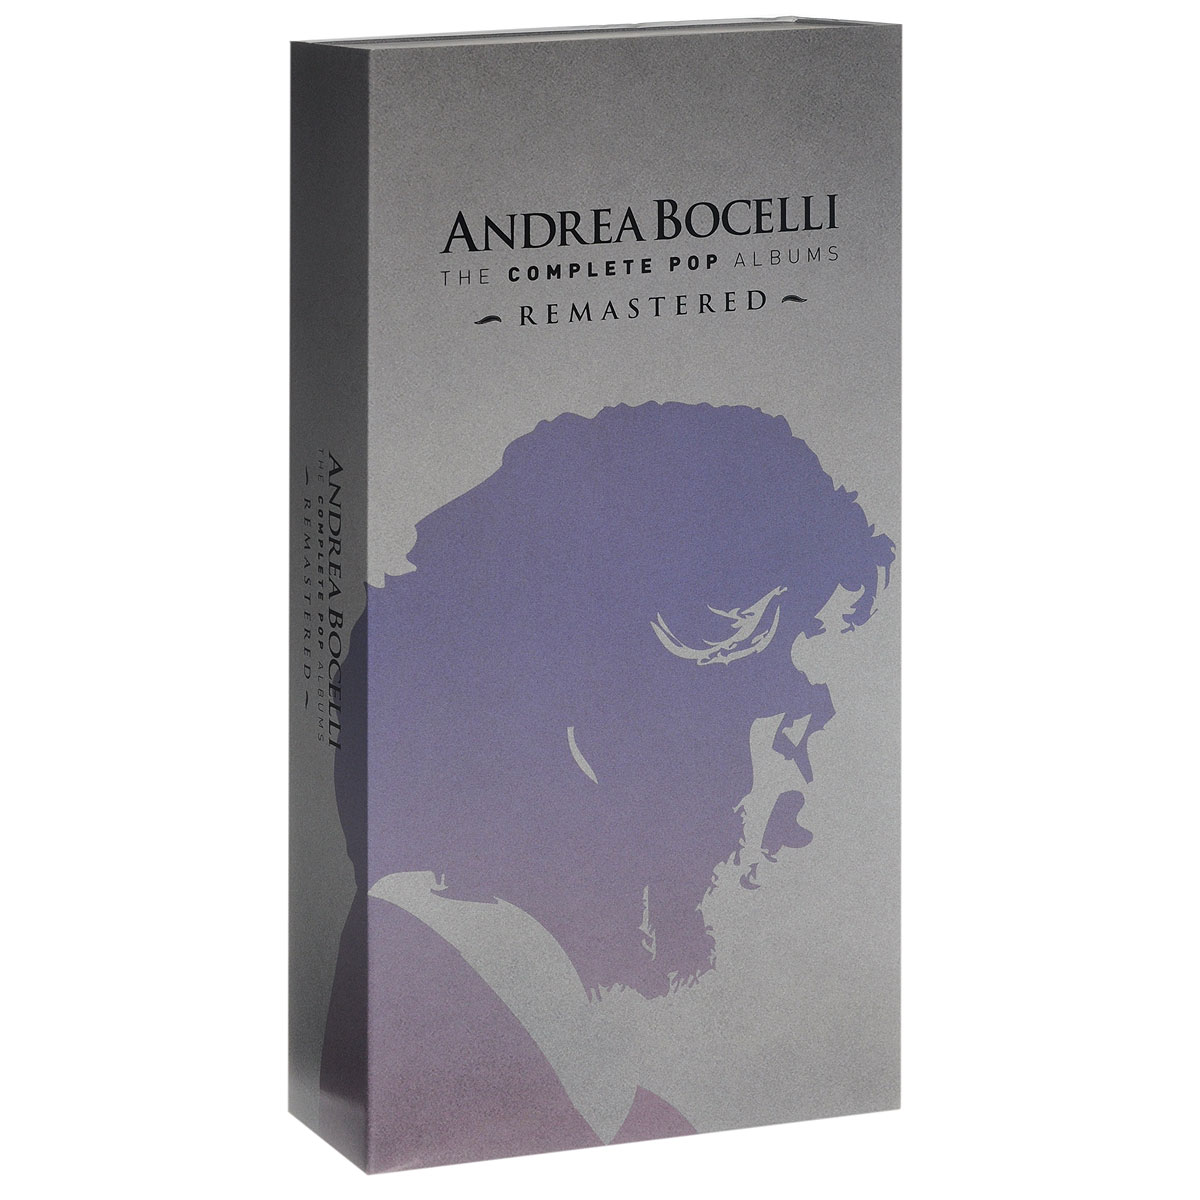 Андреа Бочелли Andrea Bocelli. The Complete Pop Albums (16 CD) 32 32 dots plastic bricks the island straight crossroad curve green meadow road plate building blocks parts bricks toys diy